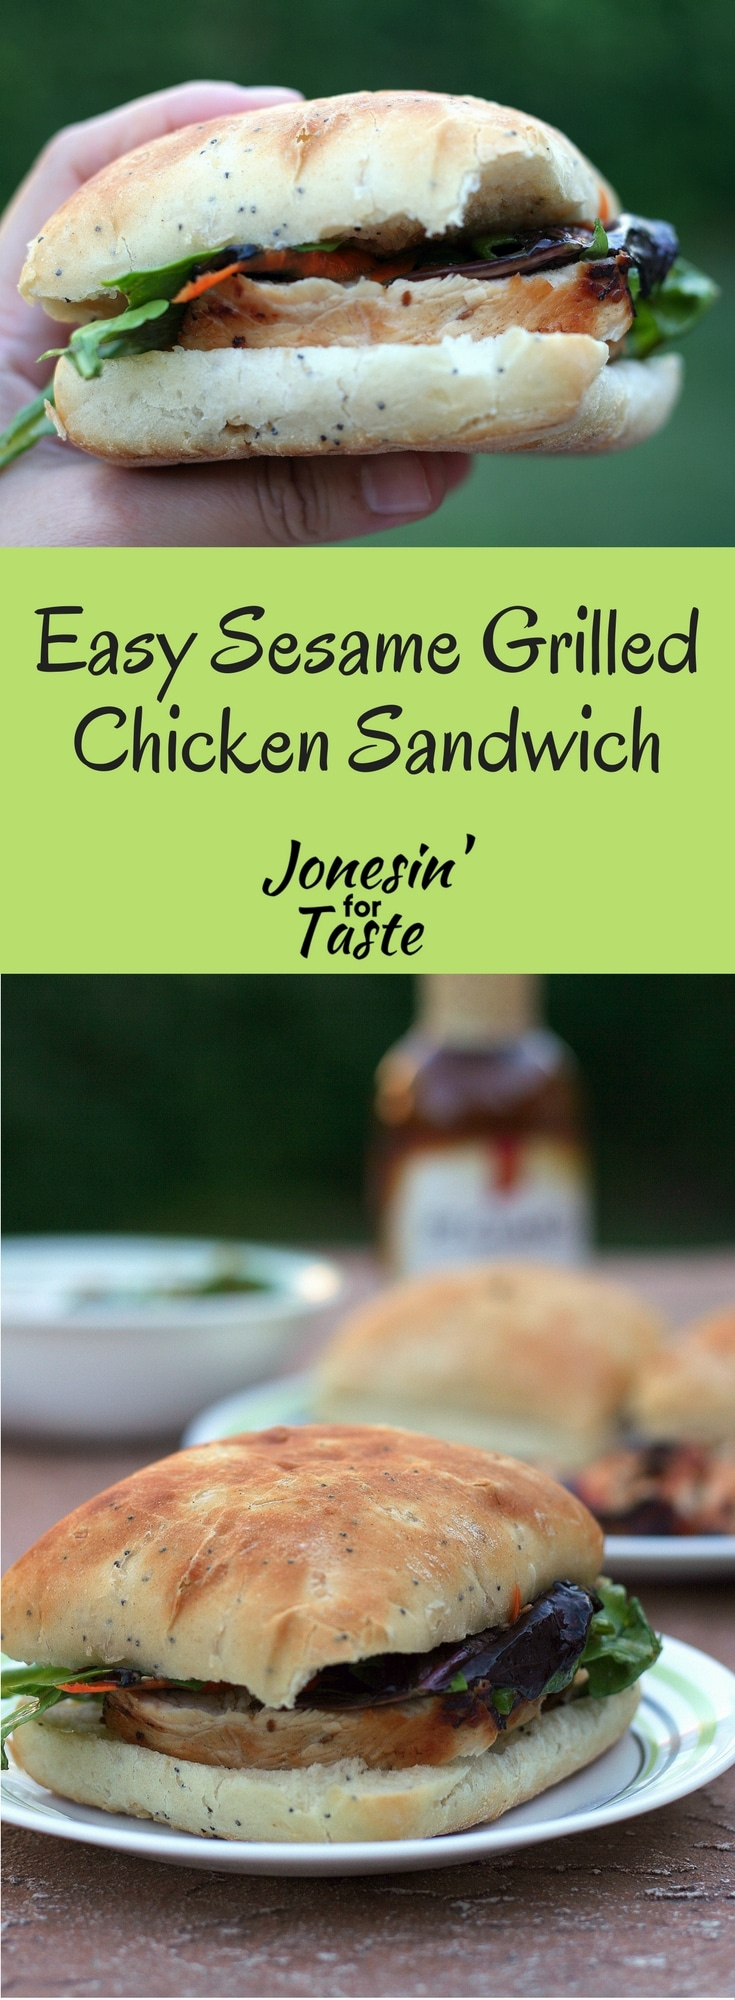 #ad Keep things simple on a busy weeknight with this Easy Sesame Grilled Chicken Sandwich topped with a spring lettuce mix on a ciabatta roll. #GrillingMadeSimple #CollectiveBias